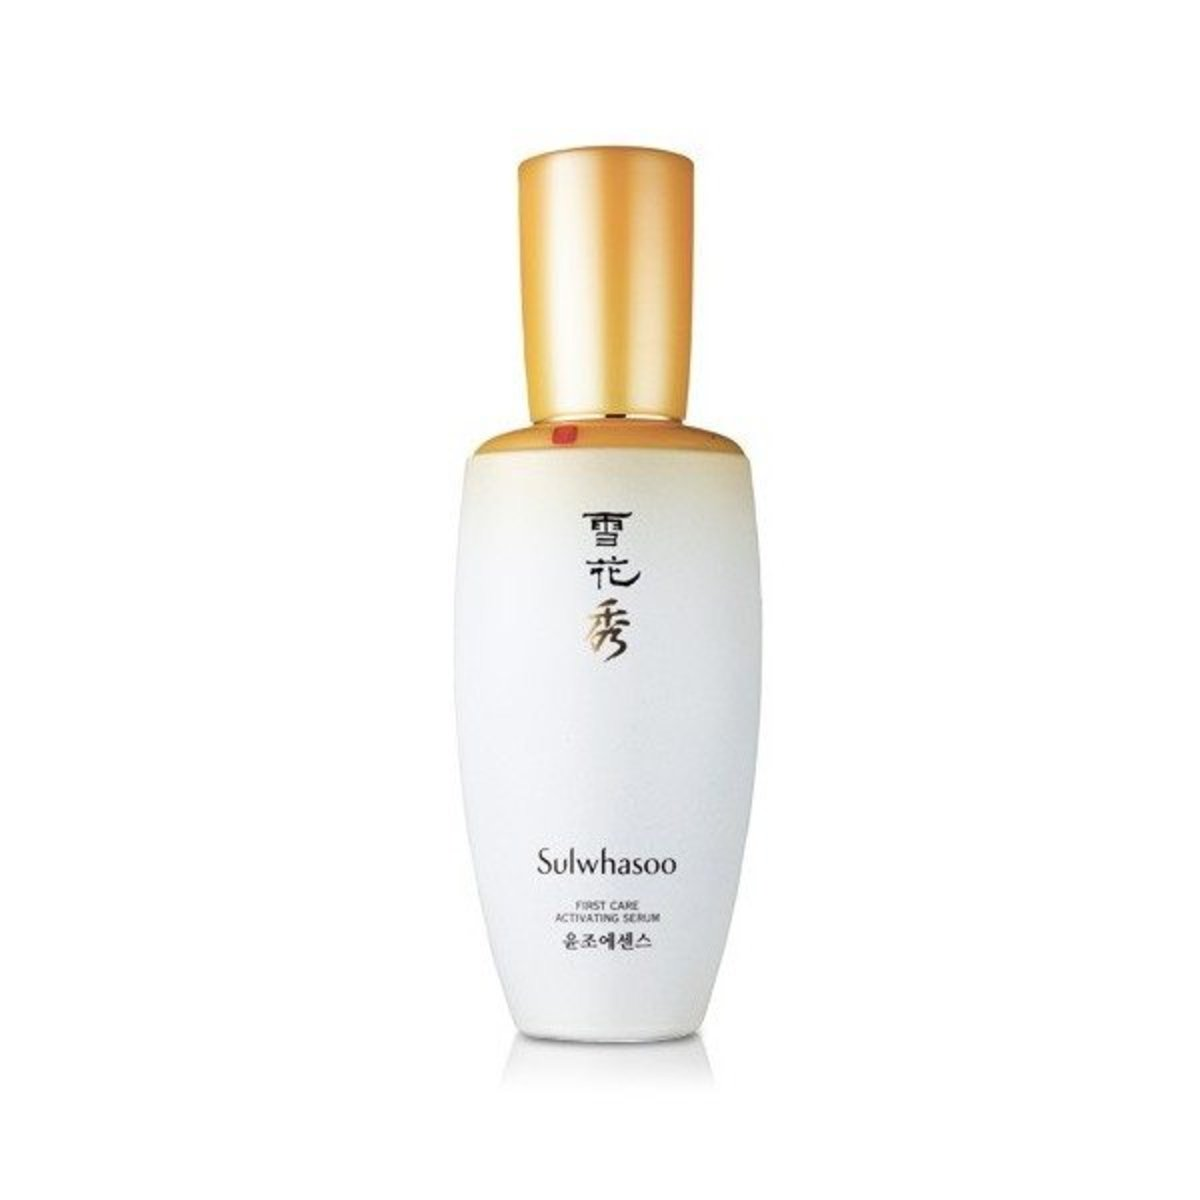 First Care Activating Serum Ex 90ml (Limited Edition) (Expiry date: 12/2020) (Parallel Import)